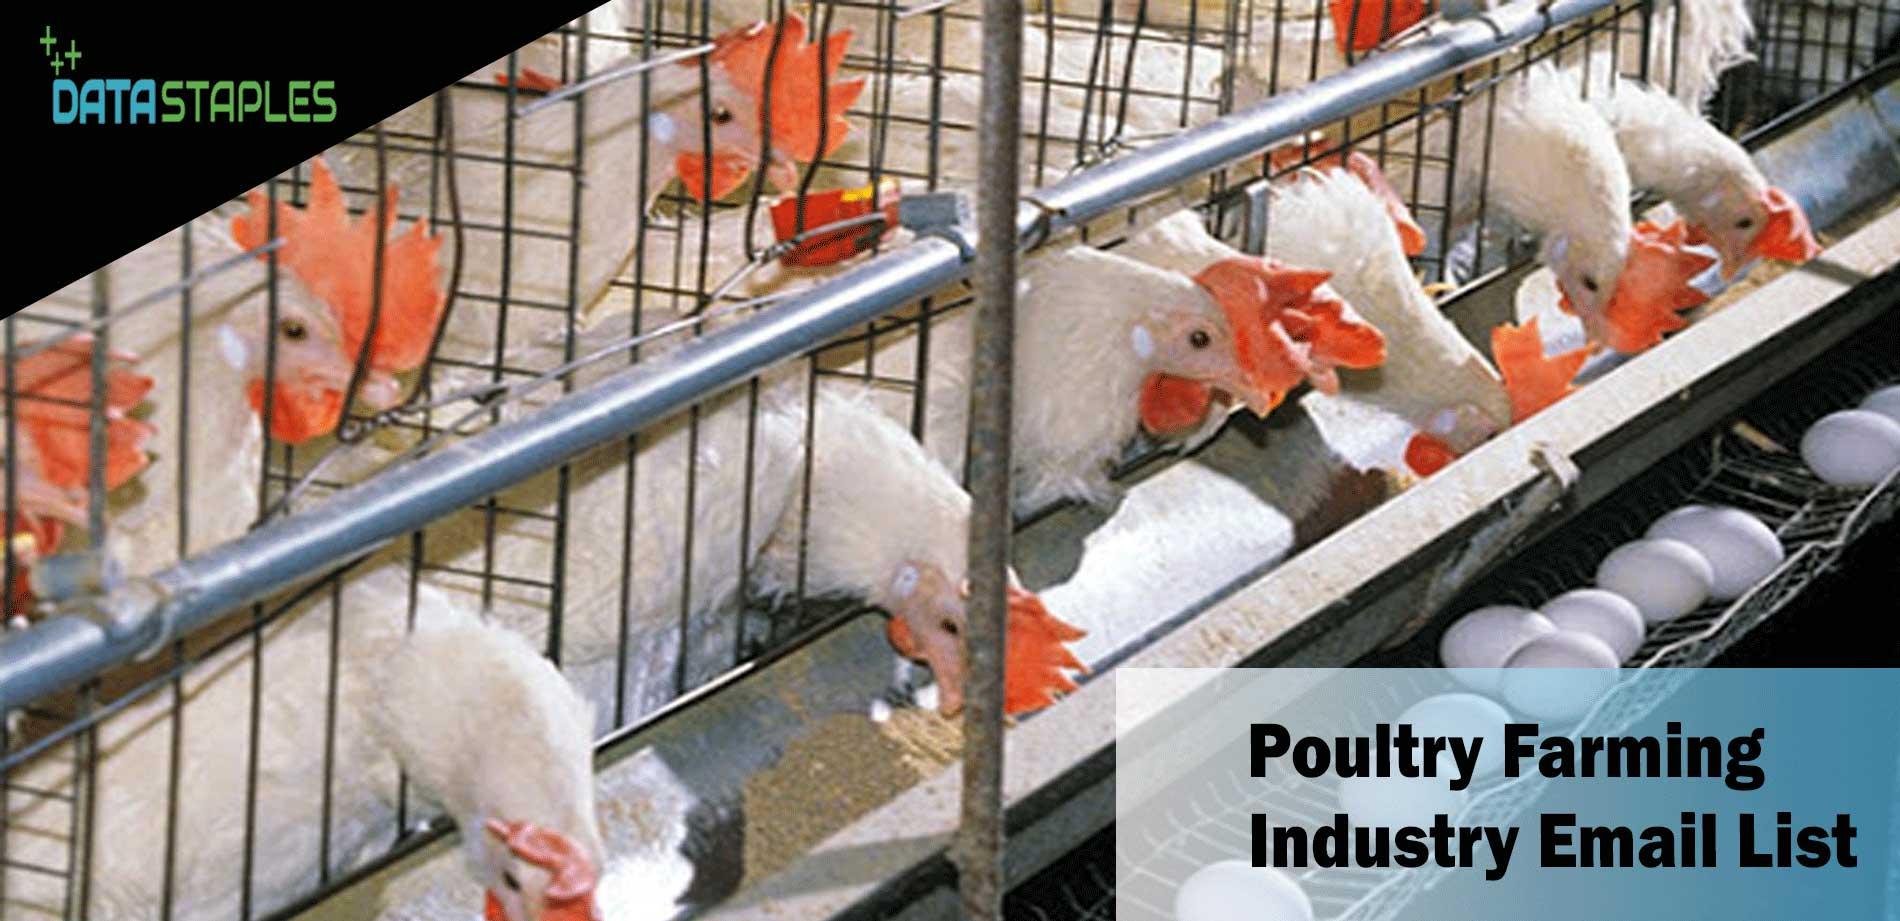 Poultry Farming Industry Email List | DataStaples